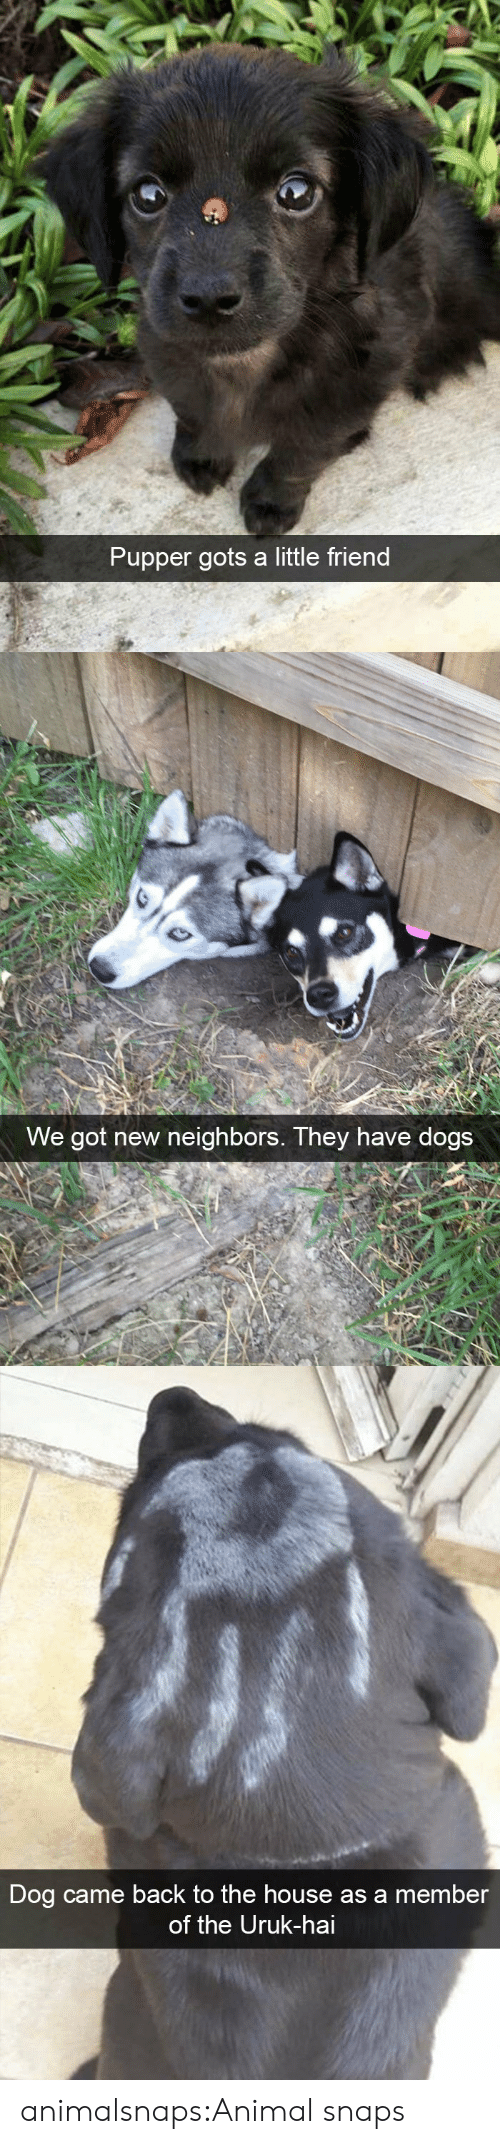 Dogs, Target, and Tumblr: Pupper gots a little friend   We got new neighbors. They have dogs   Dog came back to the house as a member  of the Uruk-hai animalsnaps:Animal snaps